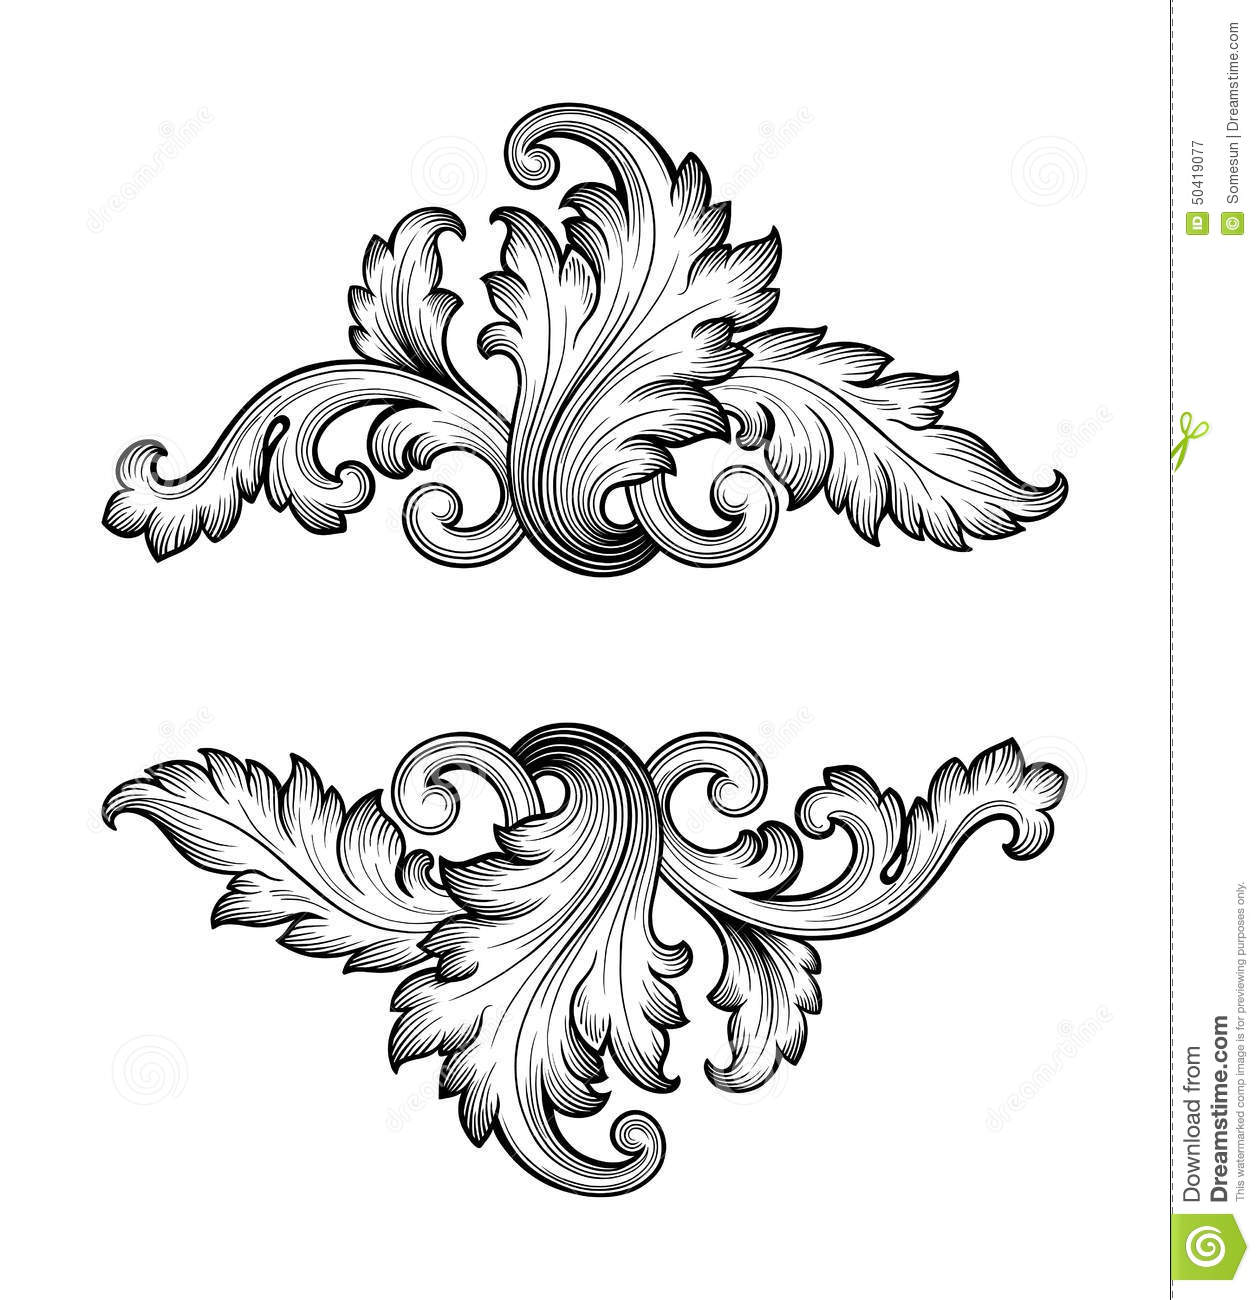 Antique Scroll Design: Vintage Baroque Frame Scroll Ornament Vector Stock Vector